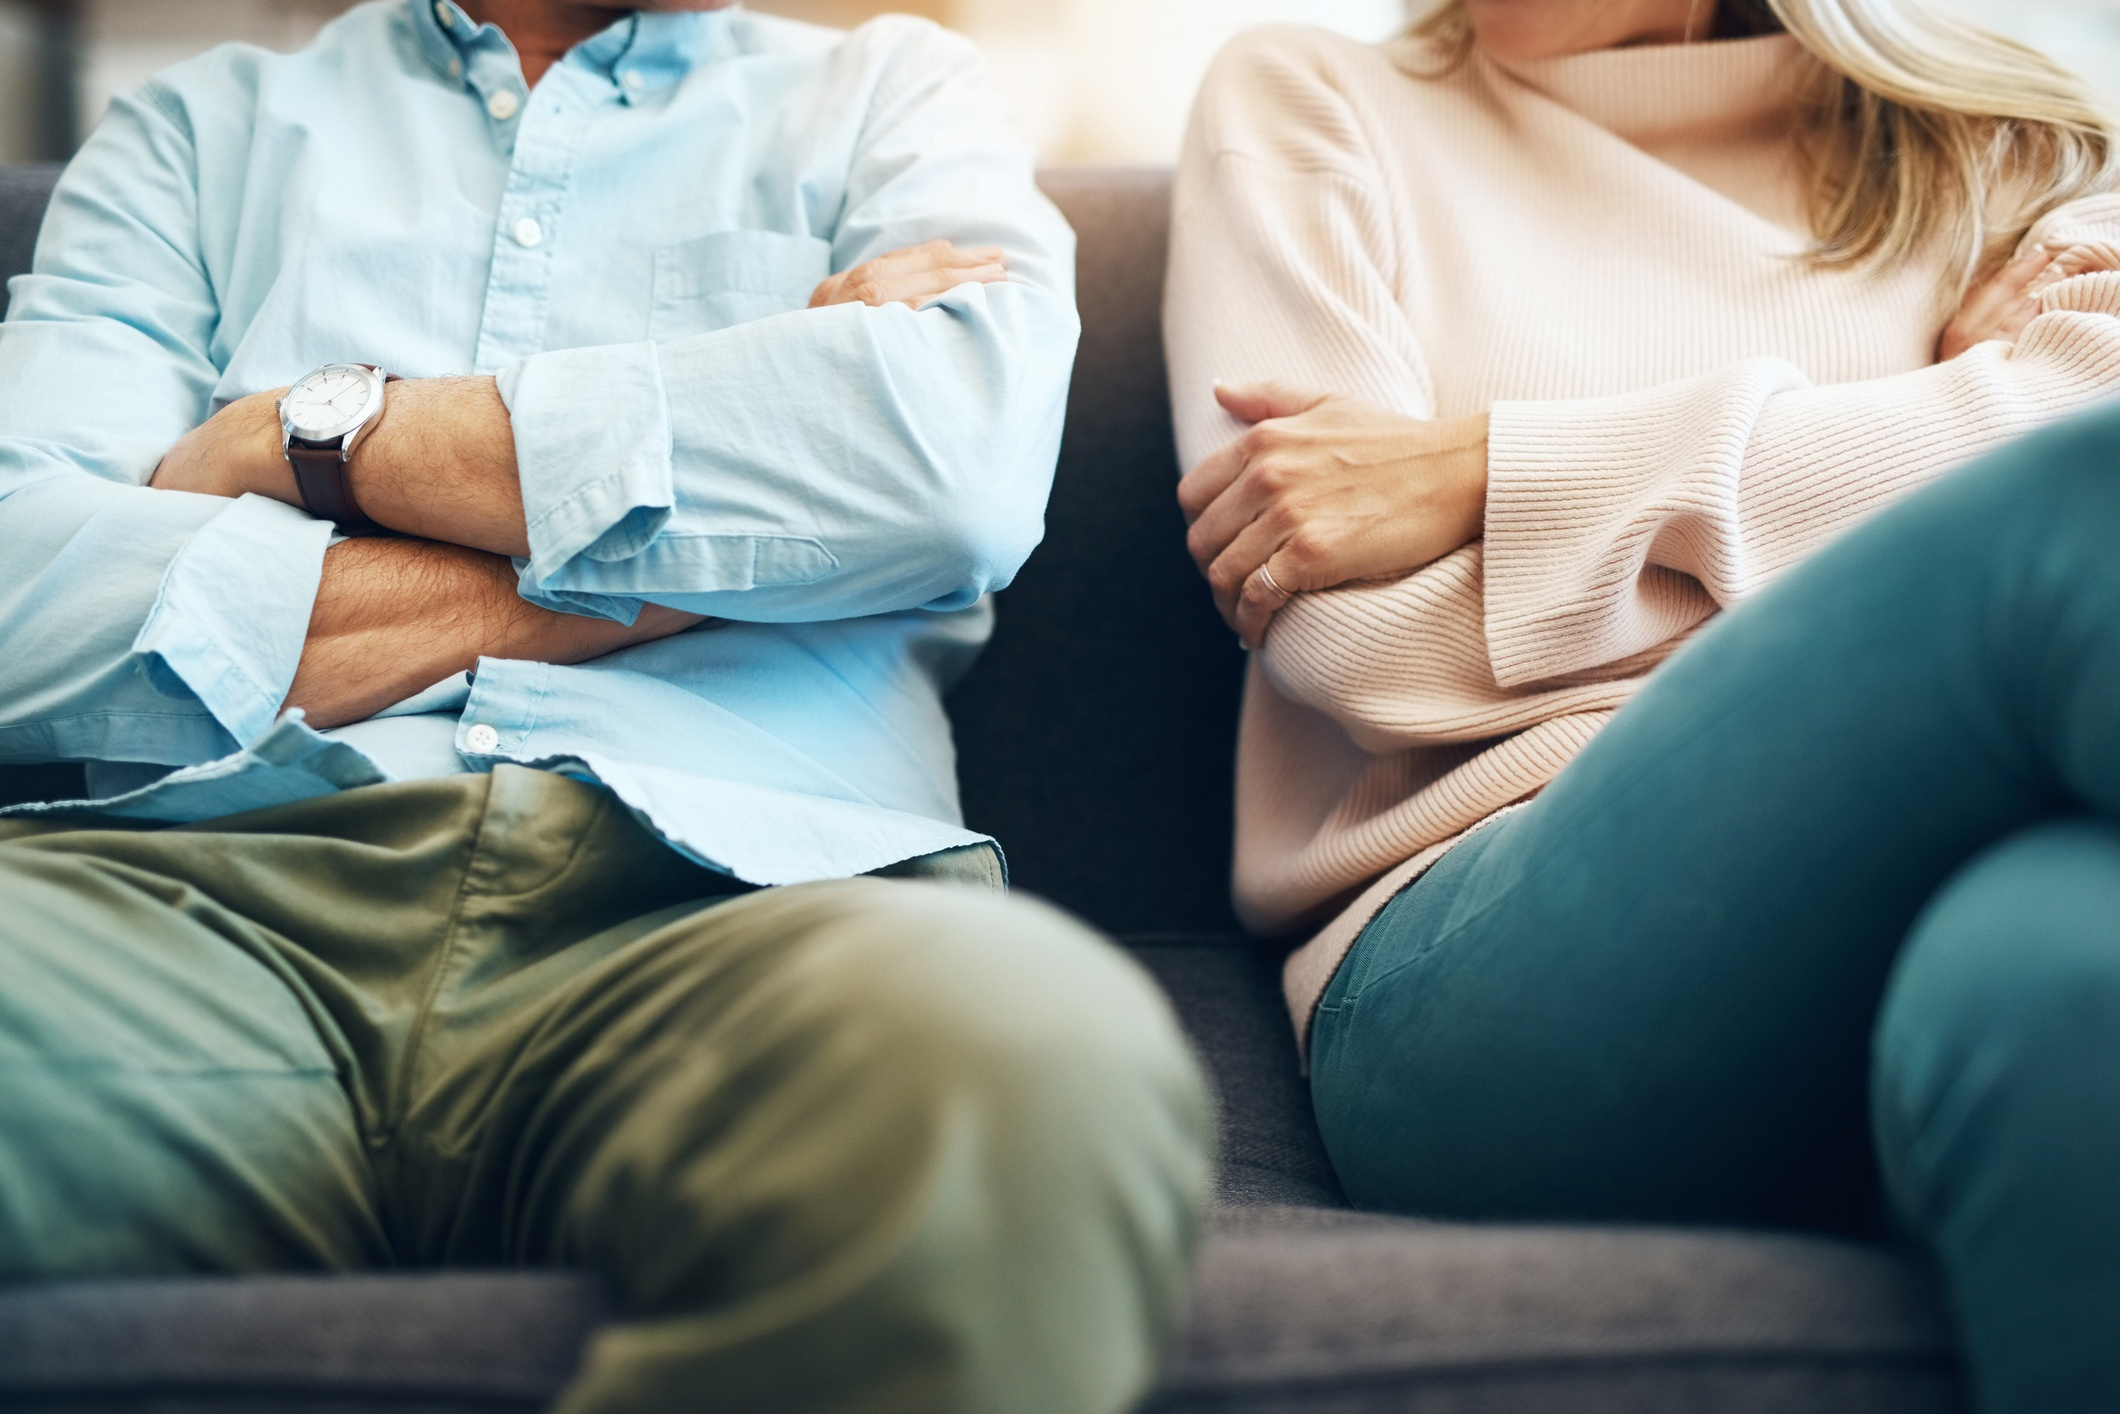 Anger closes off our connection in relationships